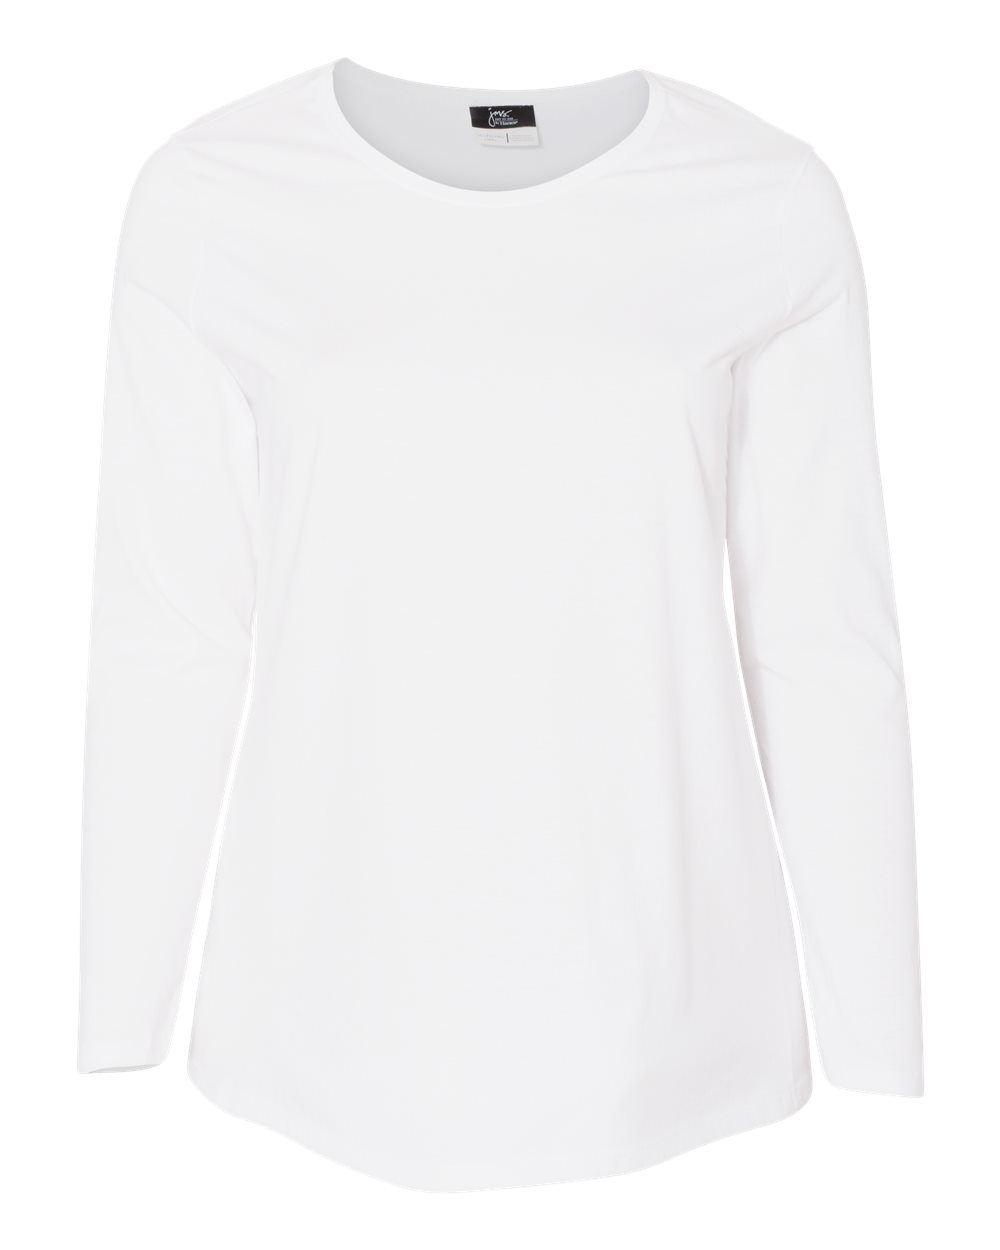 Womens Long Sleeve T-Shirt-Just My Size